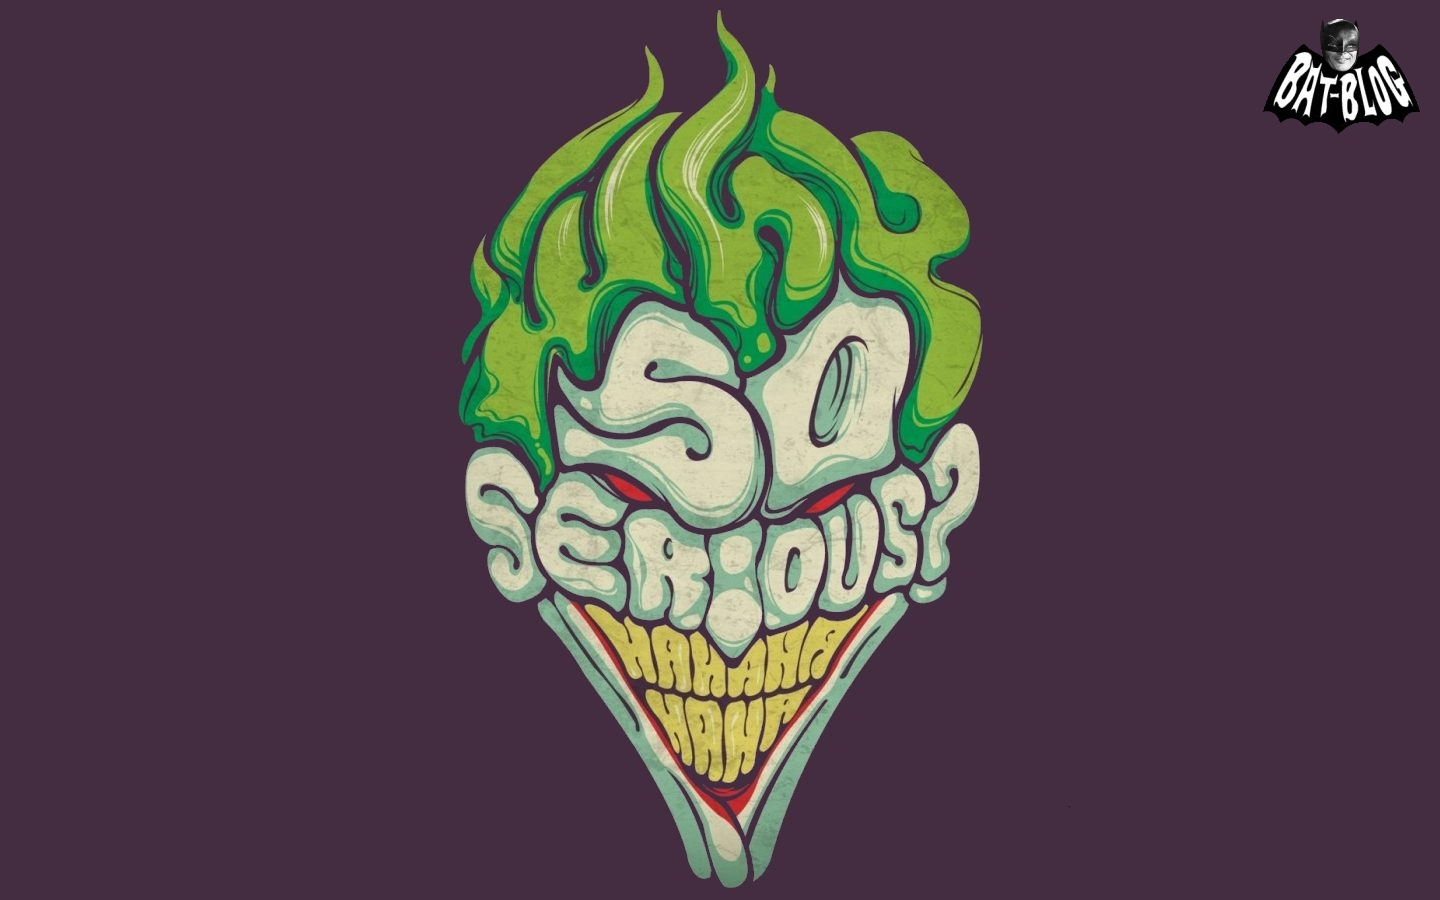 http://2.bp.blogspot.com/-u9KVIYhZeCs/T3M3217x_dI/AAAAAAAATRw/BLU6_YWGyt4/s1600/wallpaper-joker-batman-why-so-serious.jpg